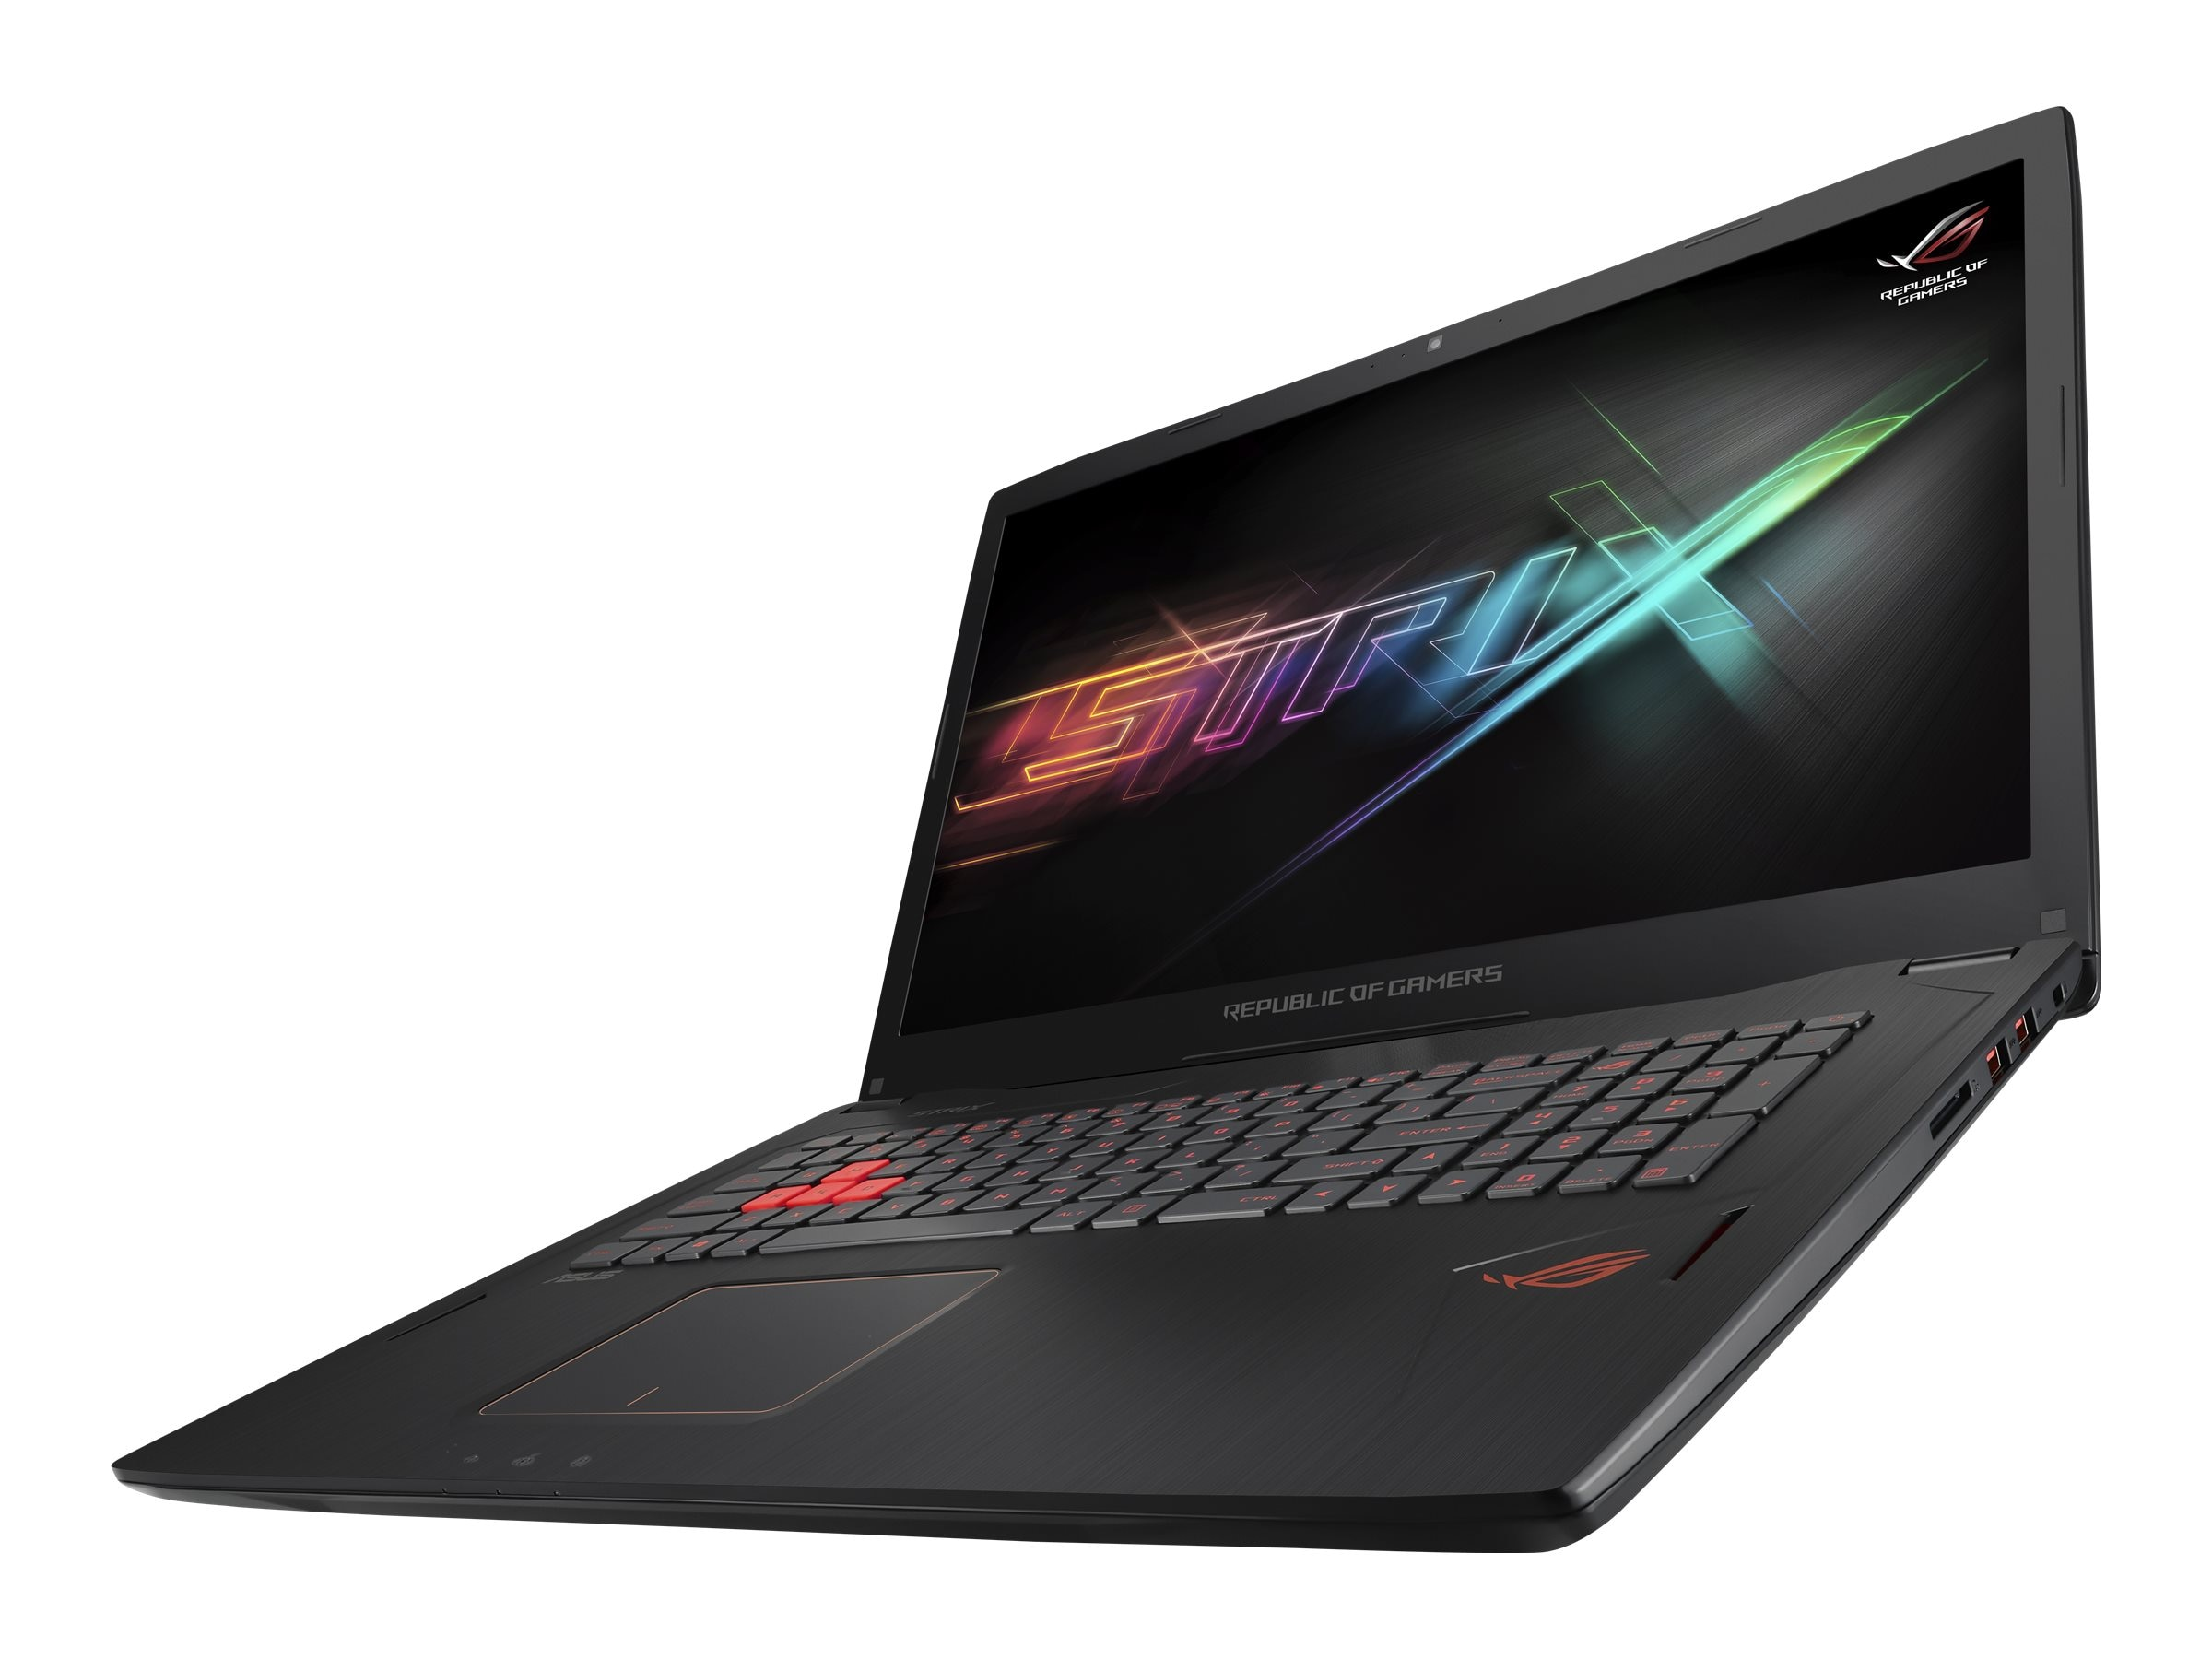 Asus GL702VM-DB71 Core i7-6700HQ 2.6GHz 16GB 1TB 17.3 W10, GL702VM-DB71